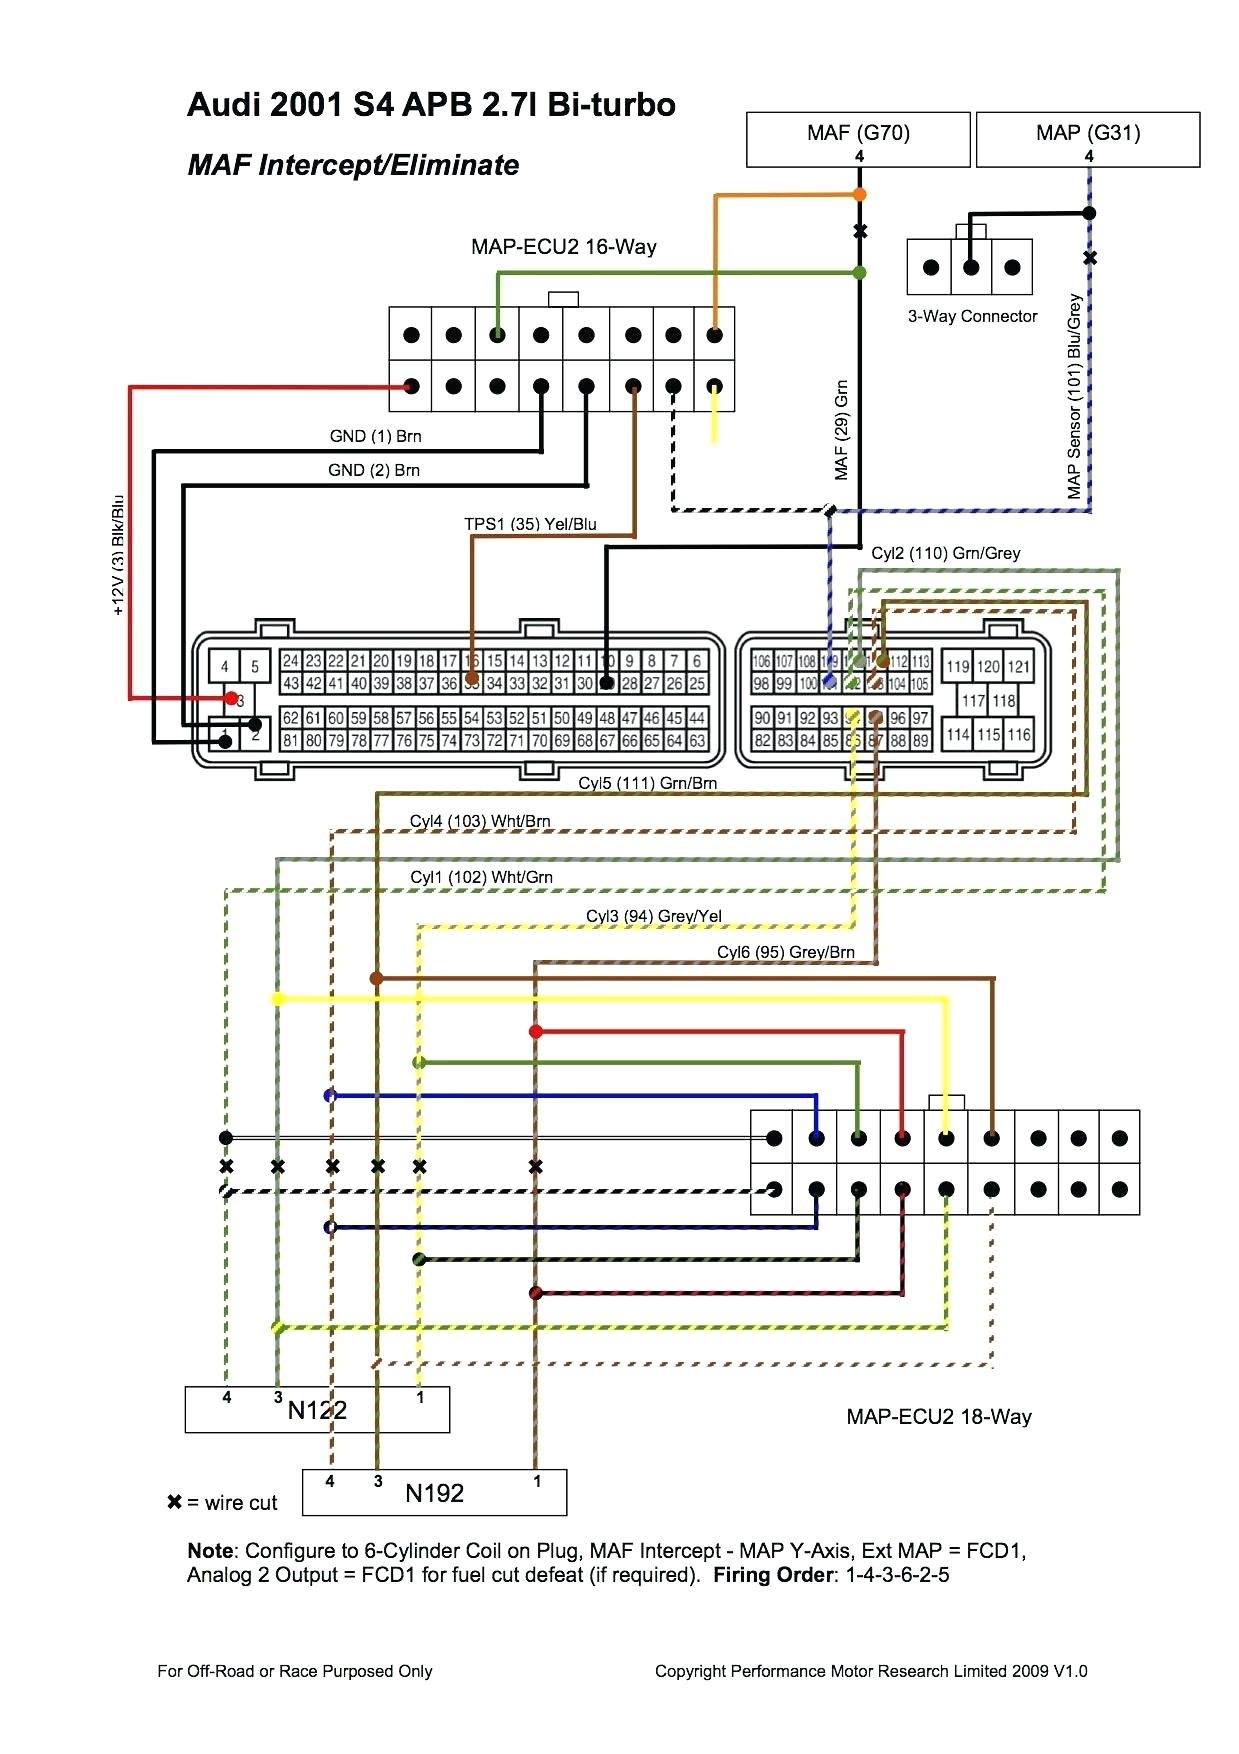 mitsubishi forklift ignition wiring diagram library wiring diagram mitsubishi ignition switch wiring diagram mitsubishi forklift wiring